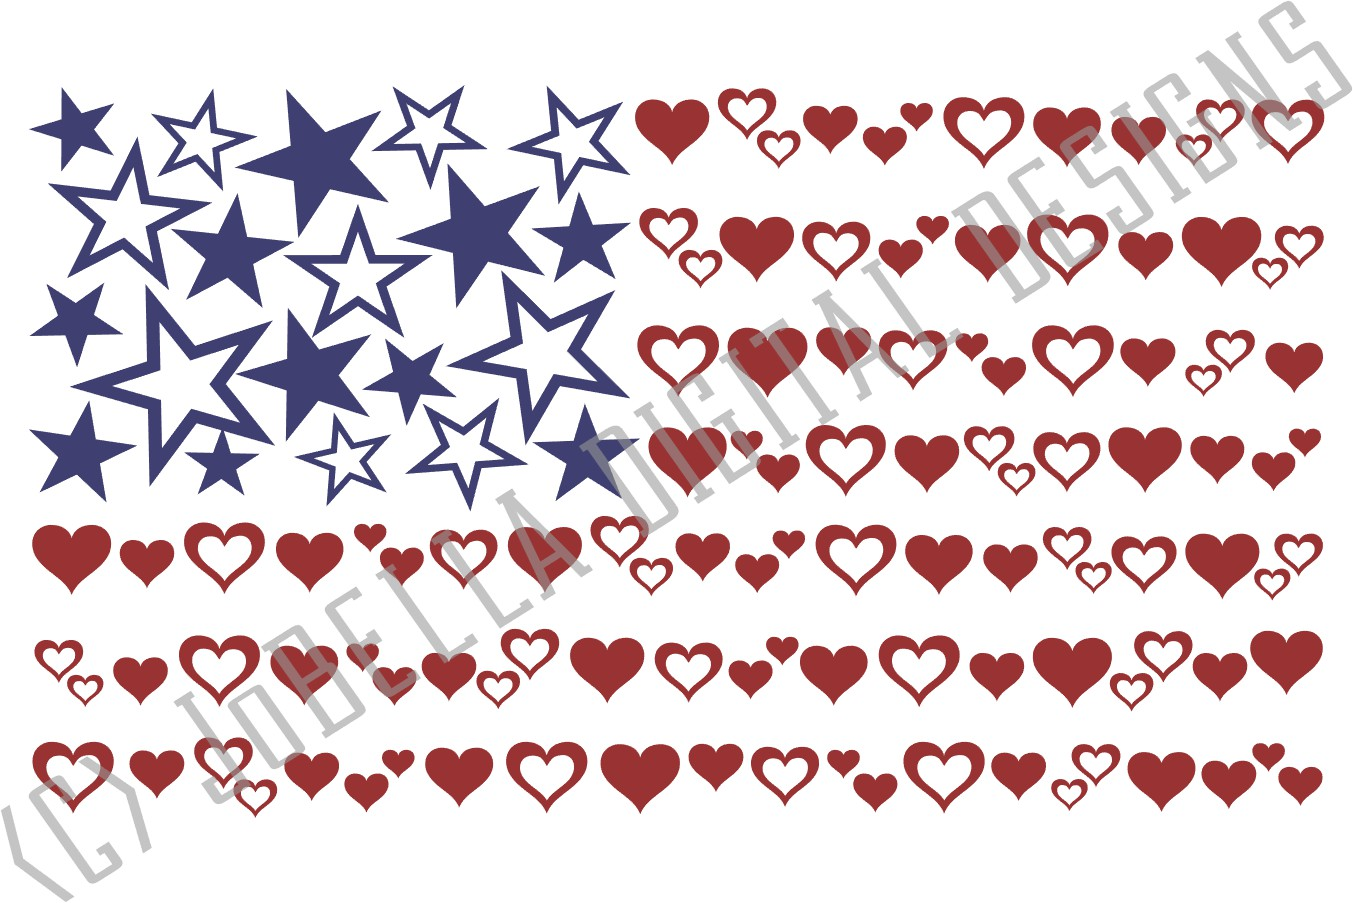 Hearts & Stars American Flag SVG & July 4th Sublimation PNG example image 4